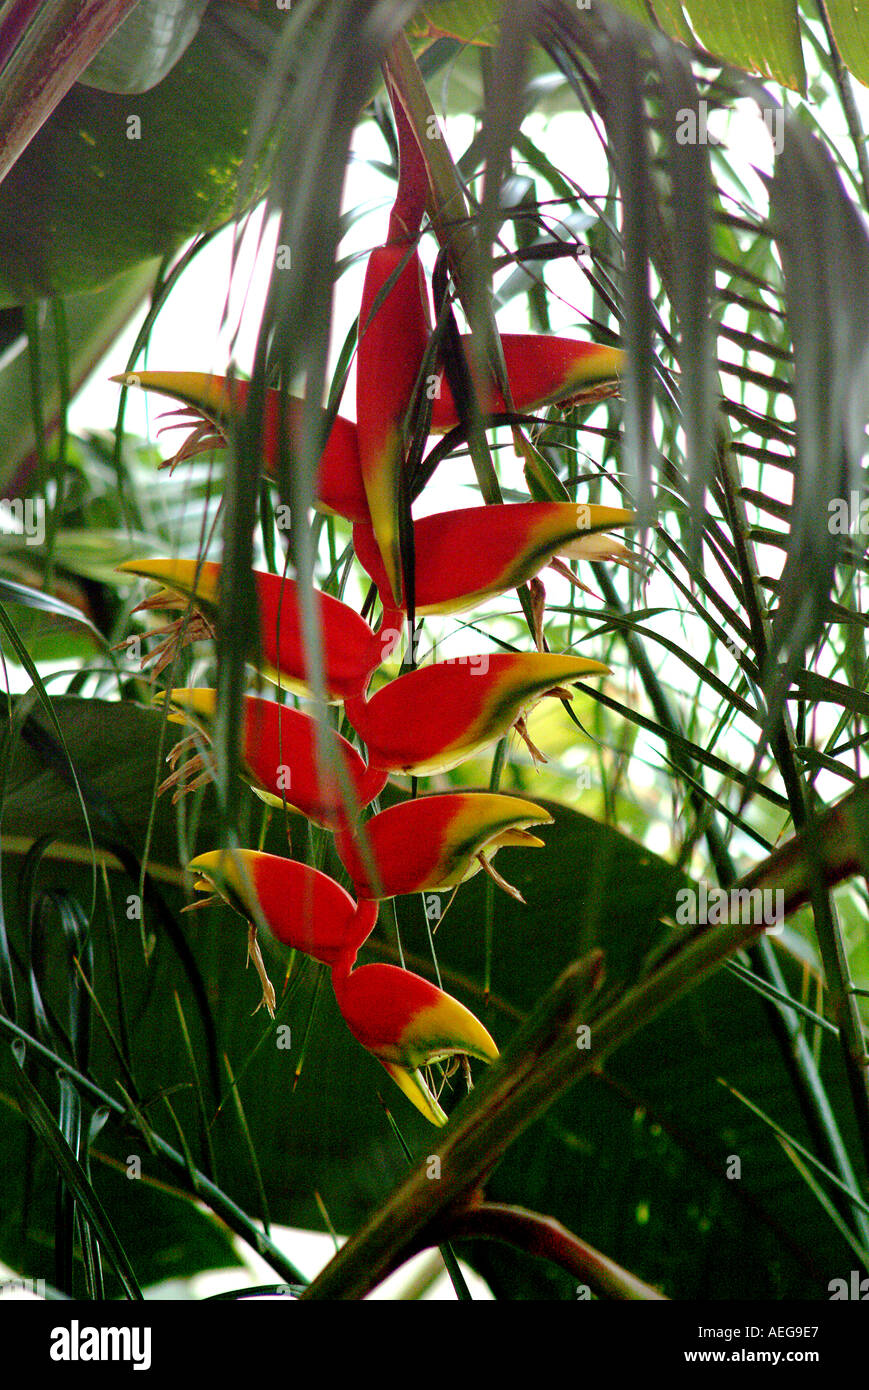 Sweet Home Garden Yard Plant Beautiful Beauty Hanging Red Inflorescence Ornamental Tropical Decorative Natural Decoration Trees